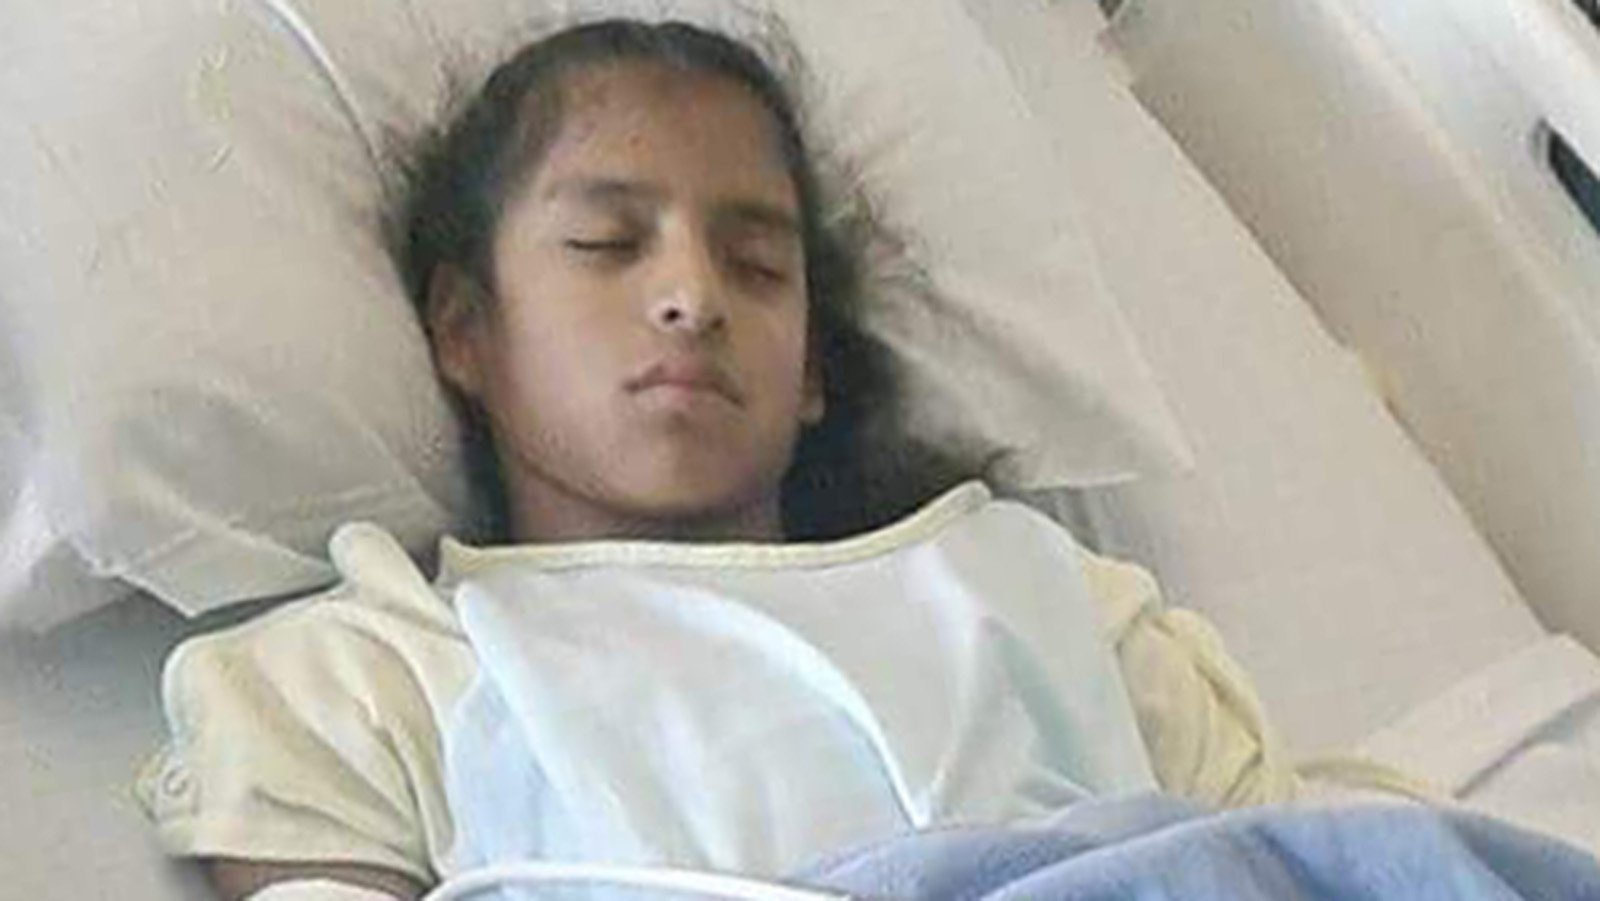 Undocumented 10-Year-Old With Cerebral Palsey Detained After Surgery